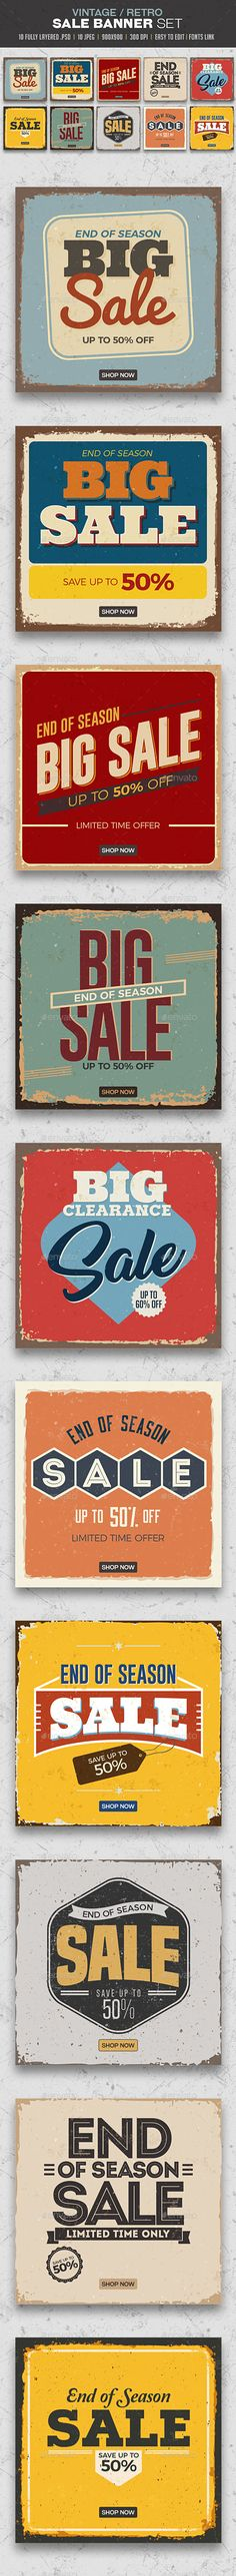 Sale Banners Set - Banners & Ads Web Elements Download here : https://graphicriver.net/item/sale-banners-set/19277262?s_rank=22&ref=Al-fatih